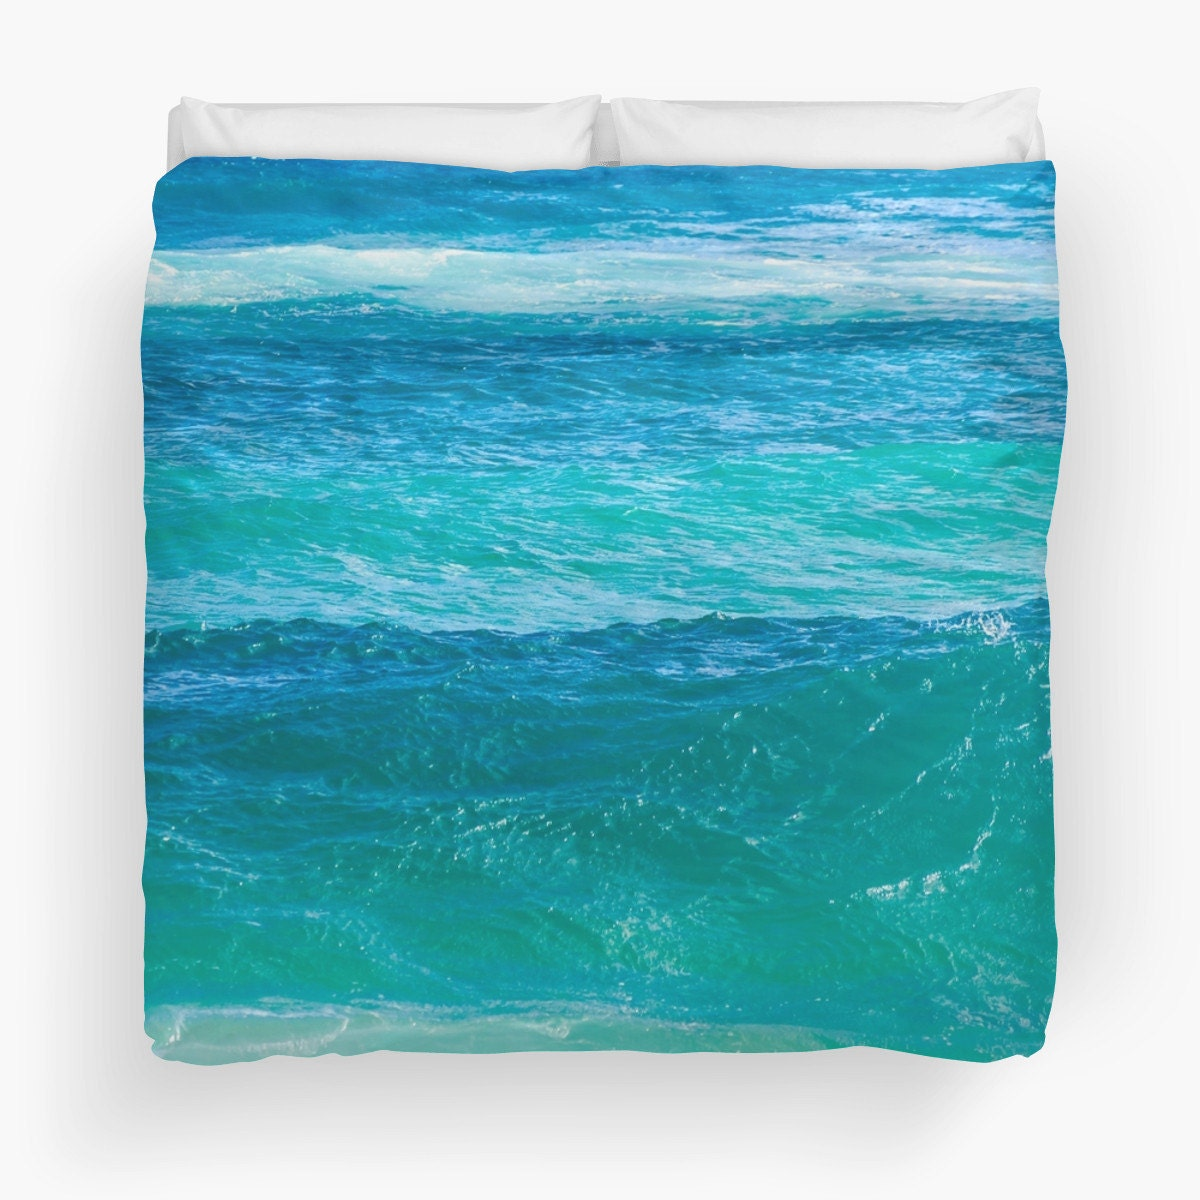 Ocean Duvet Cover with Deep teal water Water Bedding water